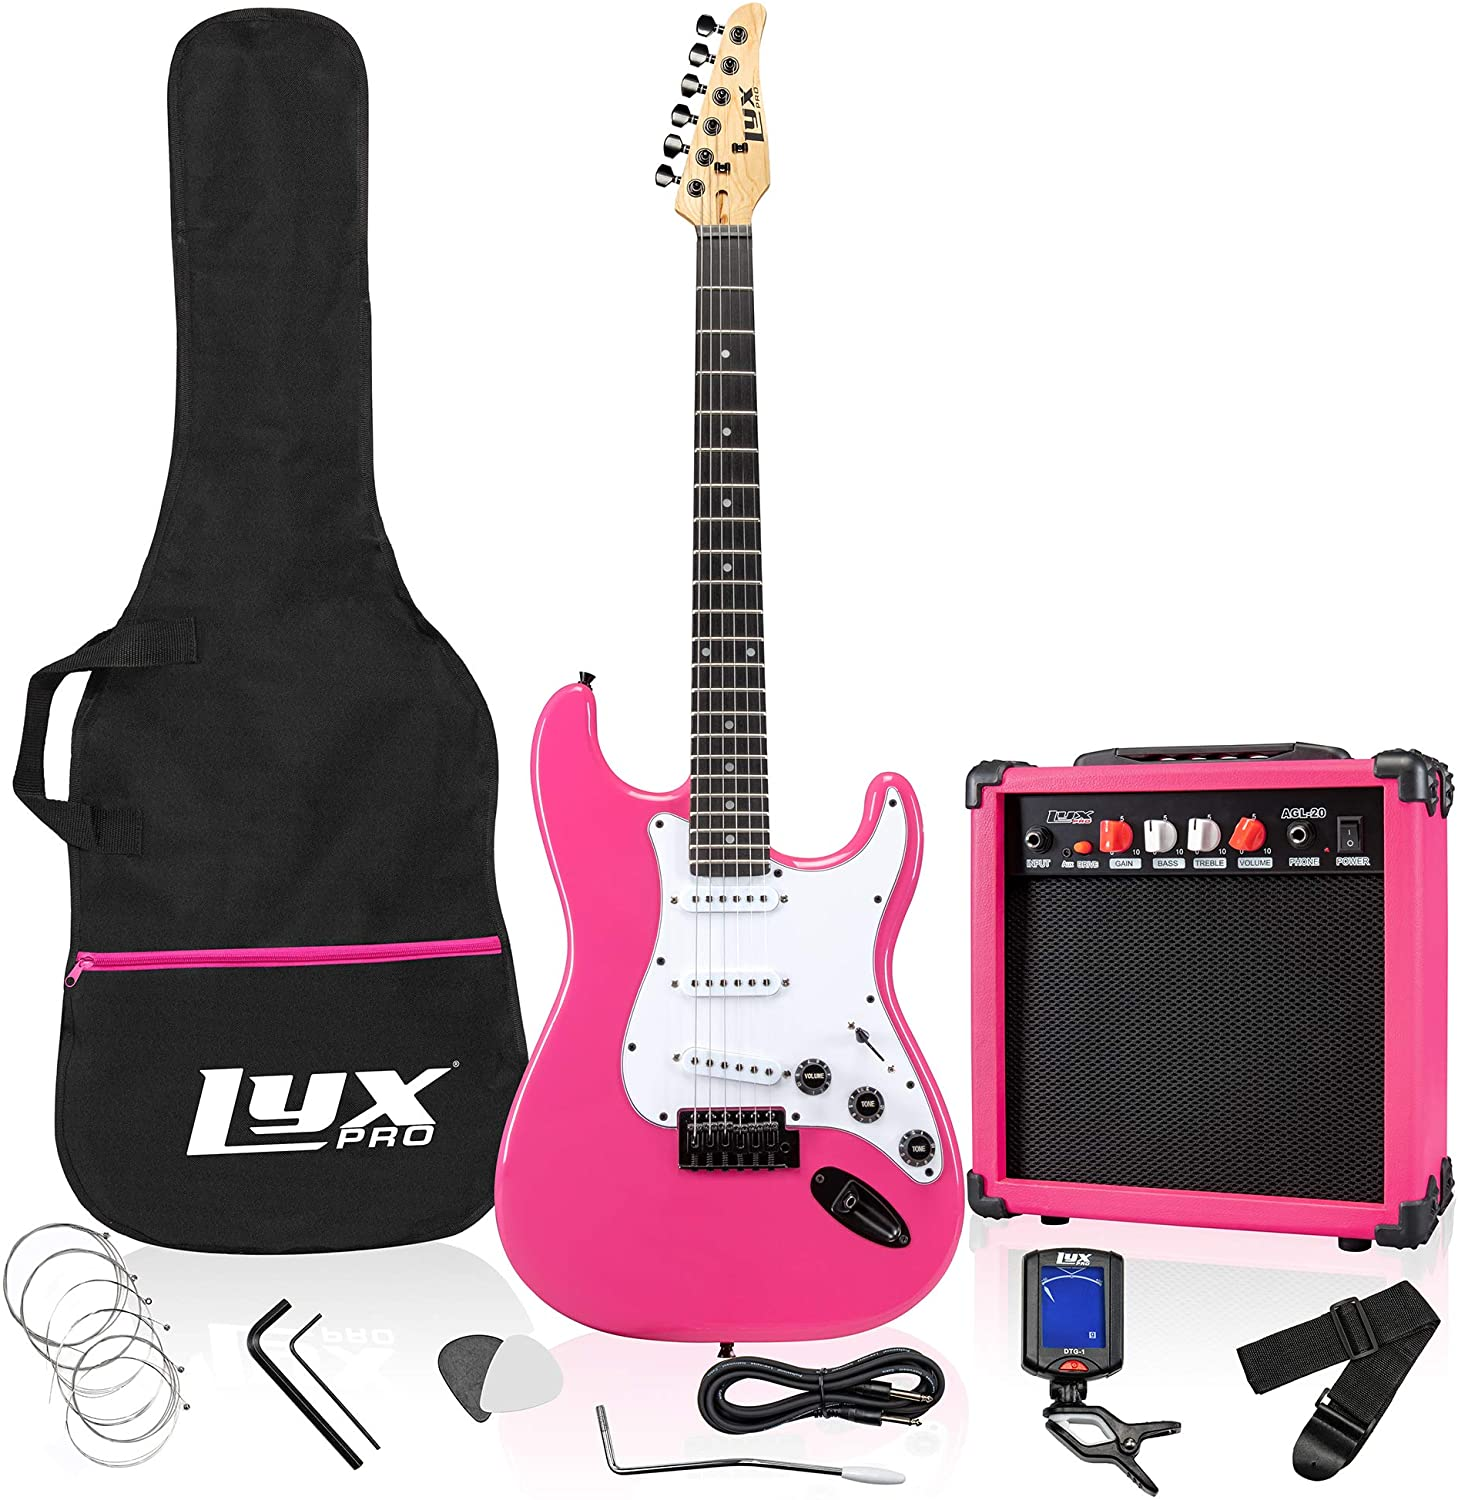 image of LyxPro electric guitar with accesories in color pink.